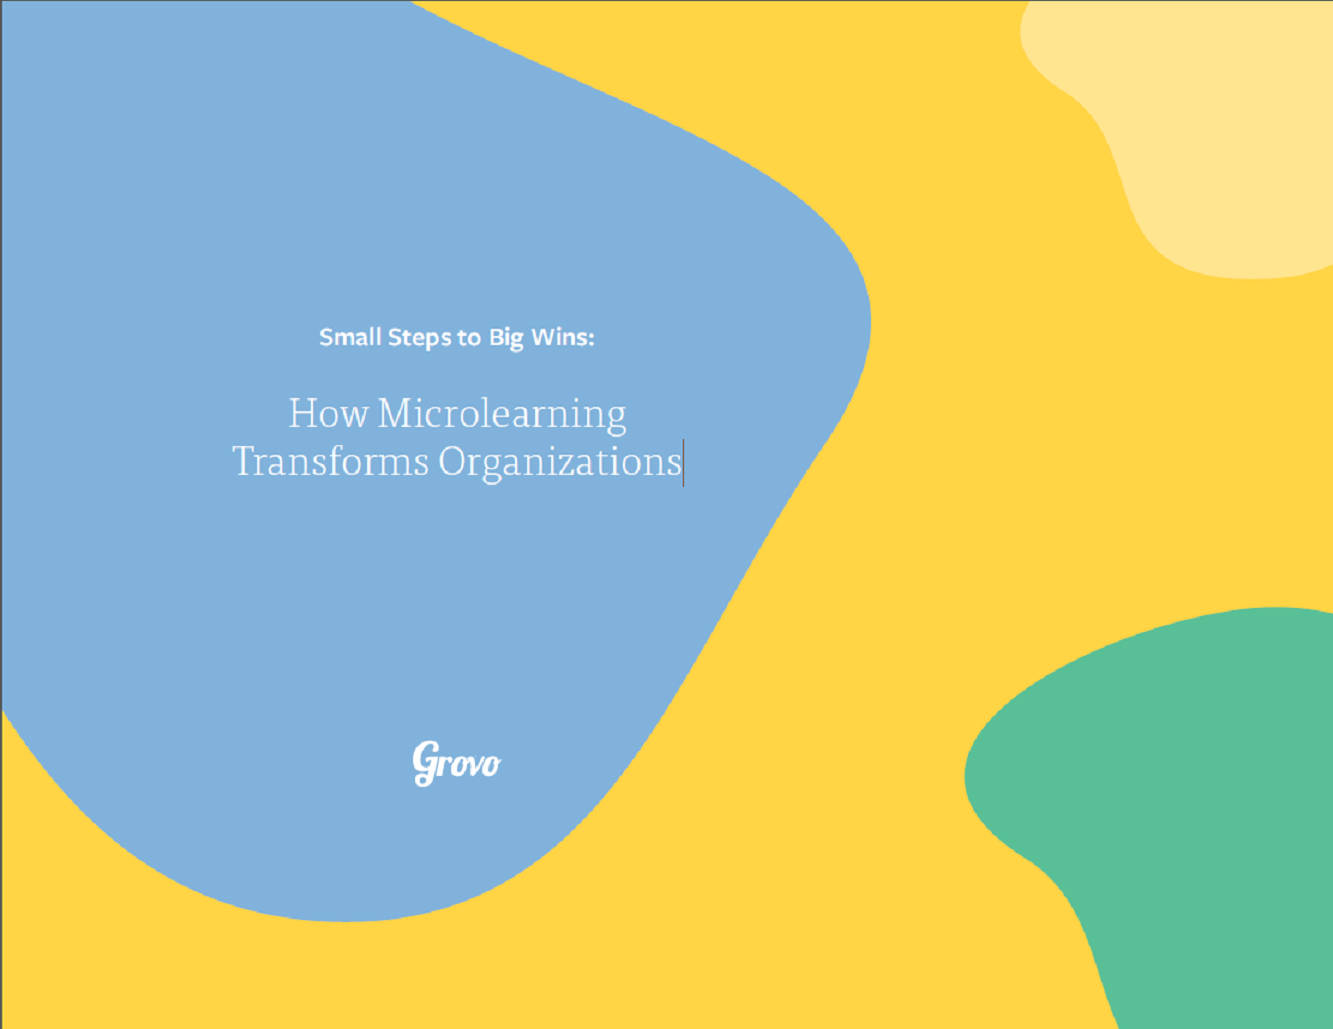 Small Steps to Big Wins: How Microlearning Transforms Organizations